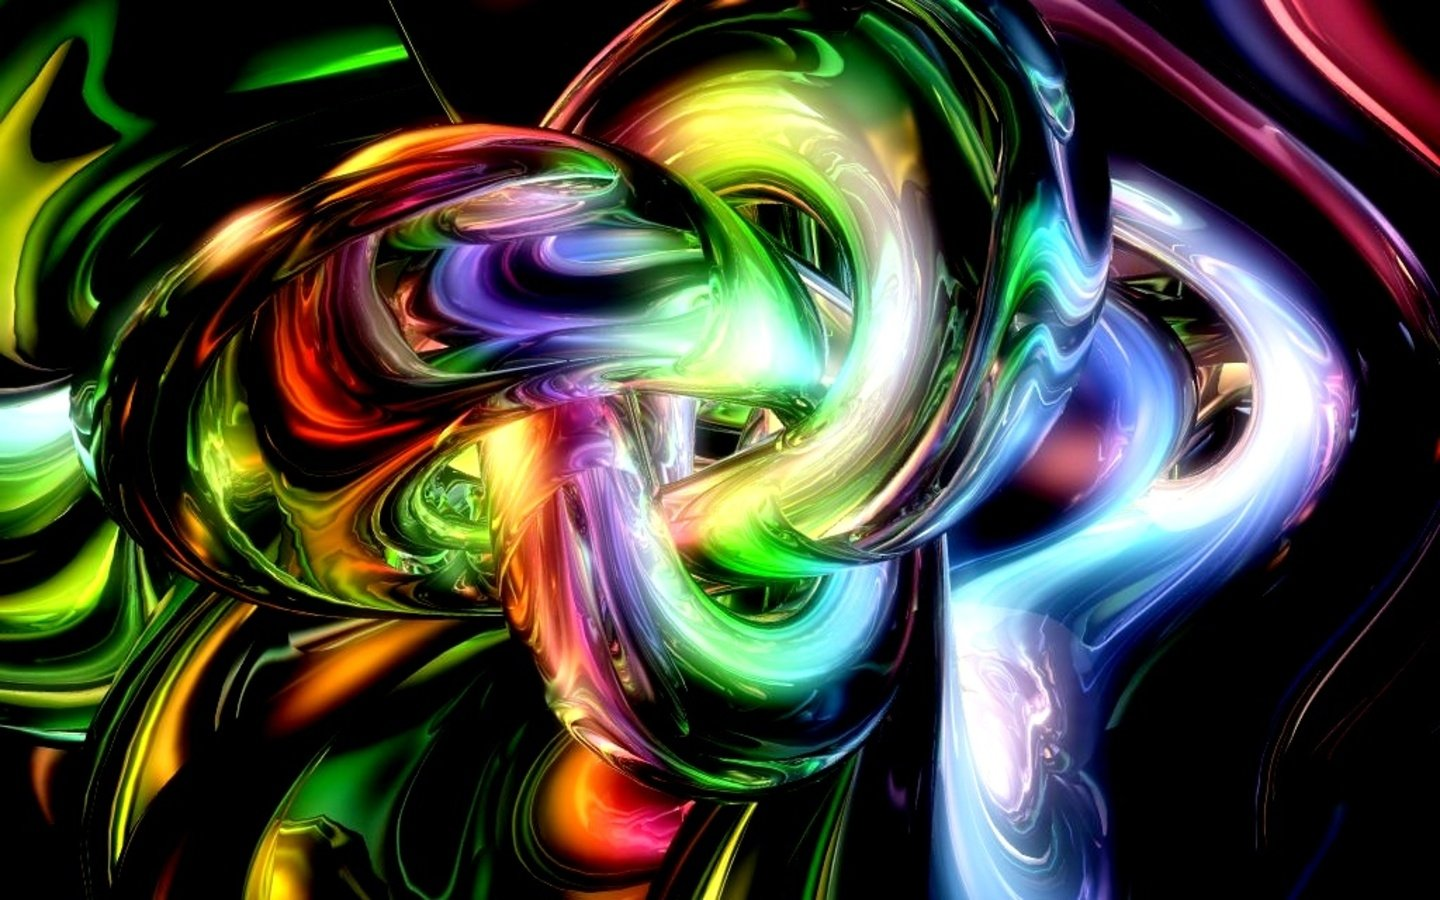 File Name 812122 Neon HD Wallpapers Backgrounds 1440x900